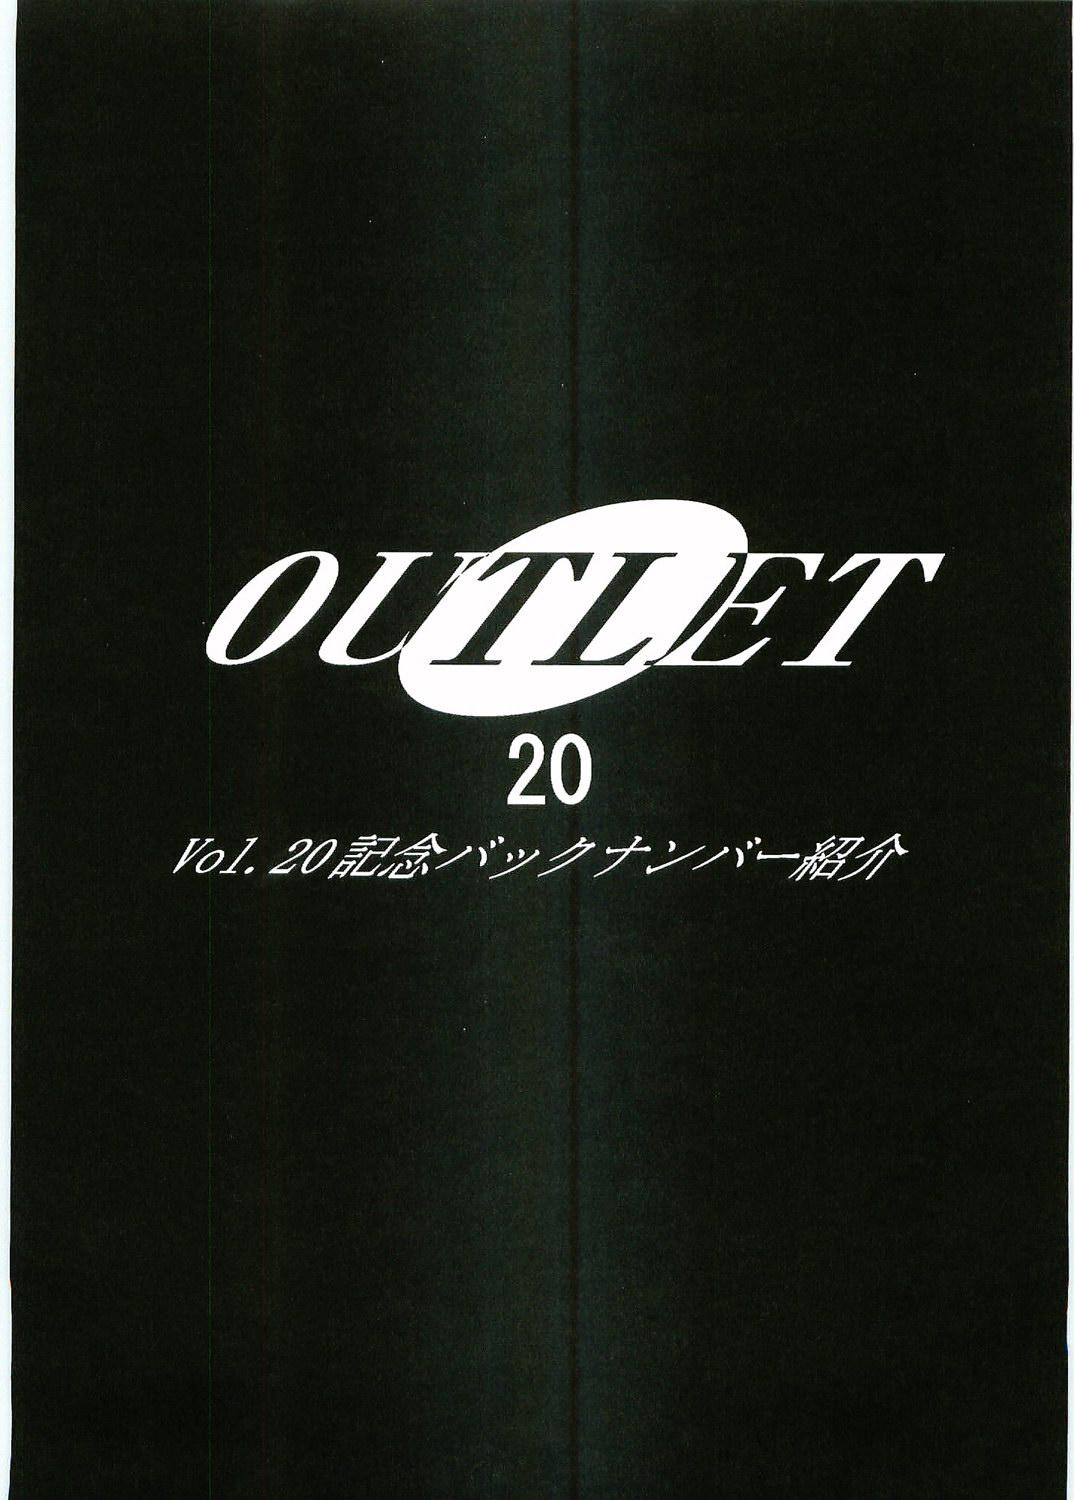 OUTLET 20 35